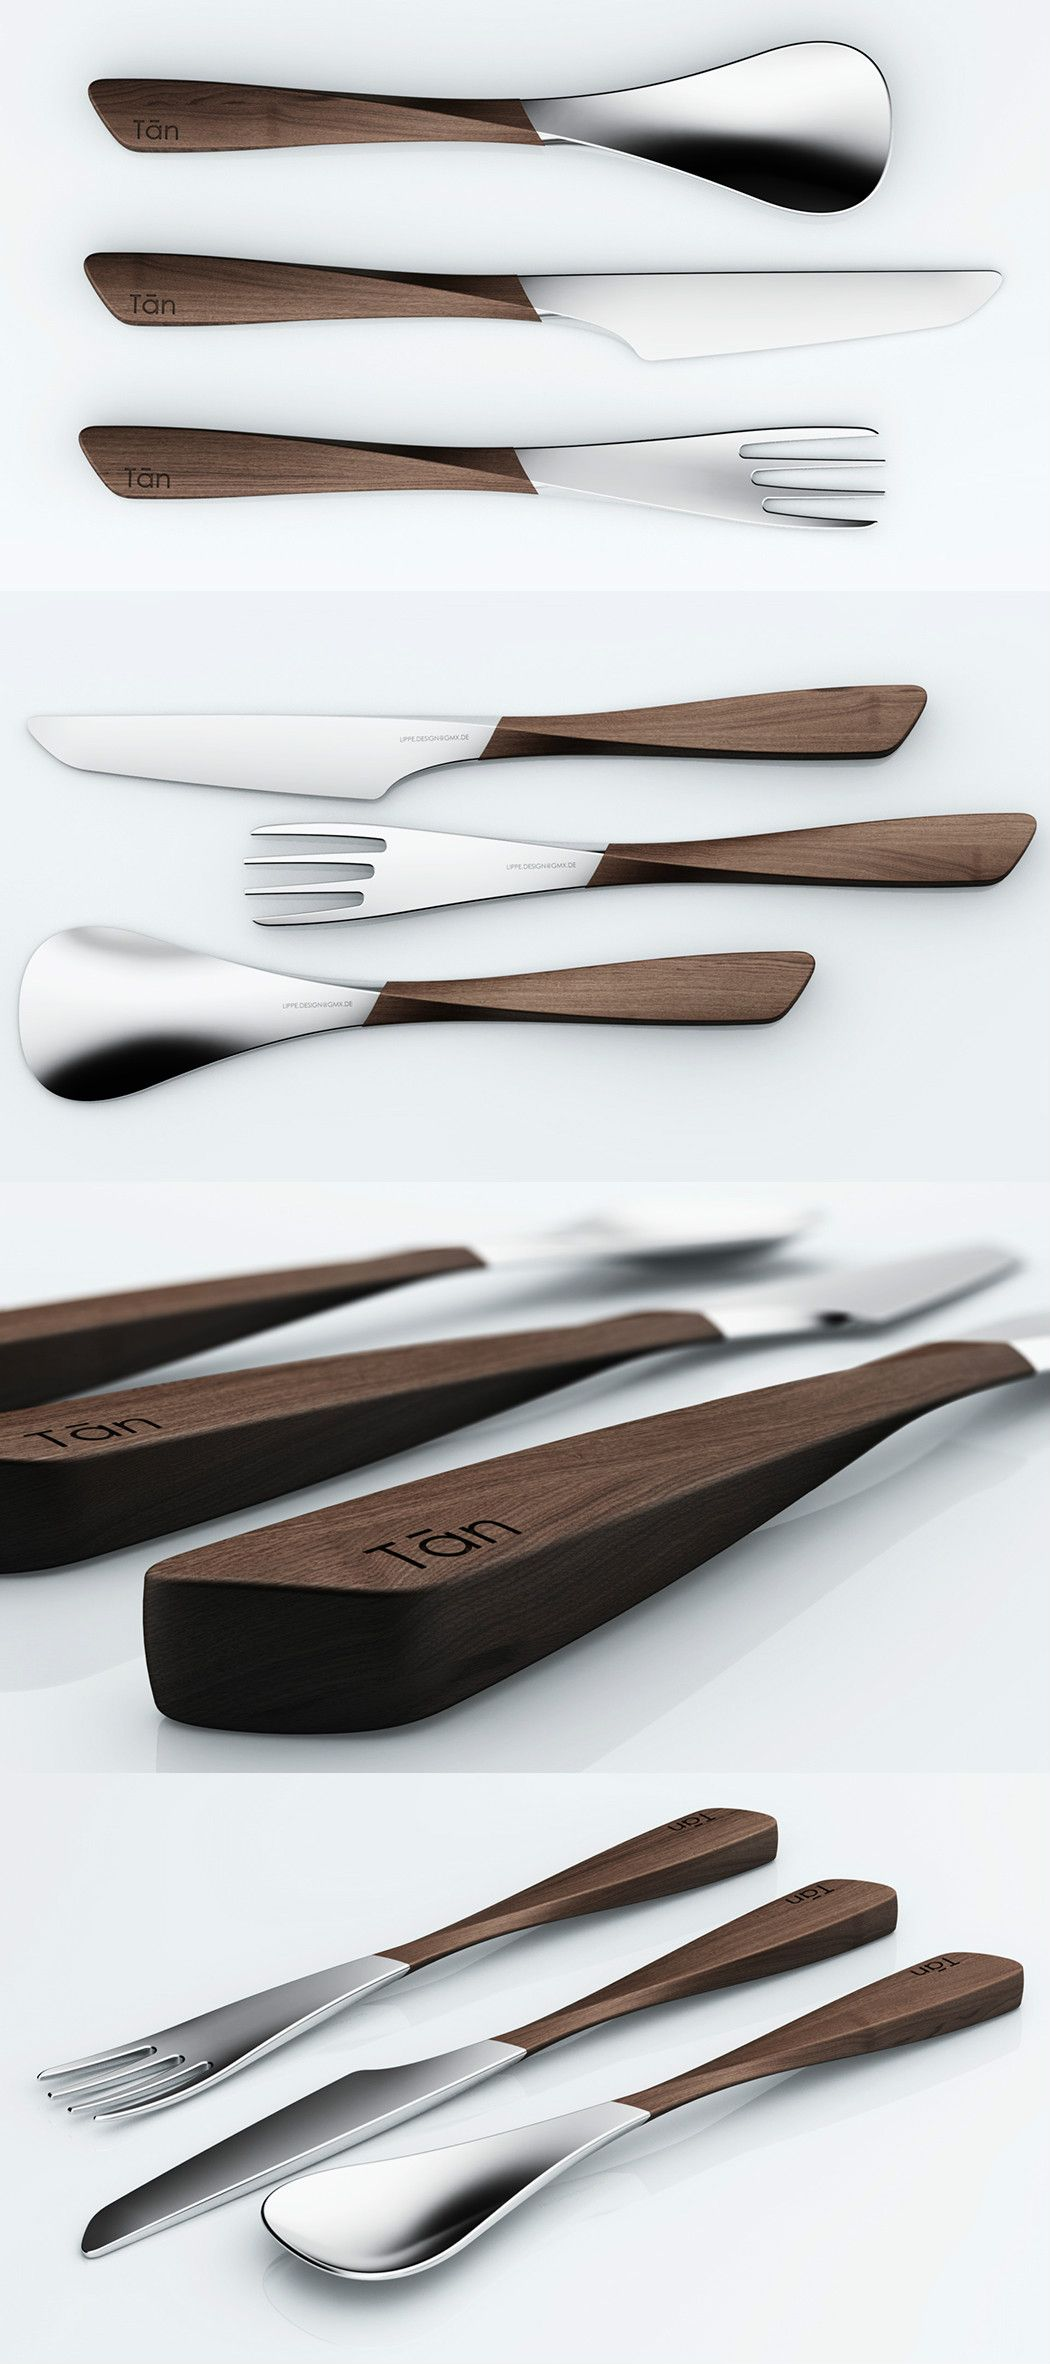 Wood Cutlery Might Not Be Dishwasher Safe But The Warmth And Refined Aesthetic Are Worth The Hand Wash Read Cutlery Design Tableware Design Industrial Design